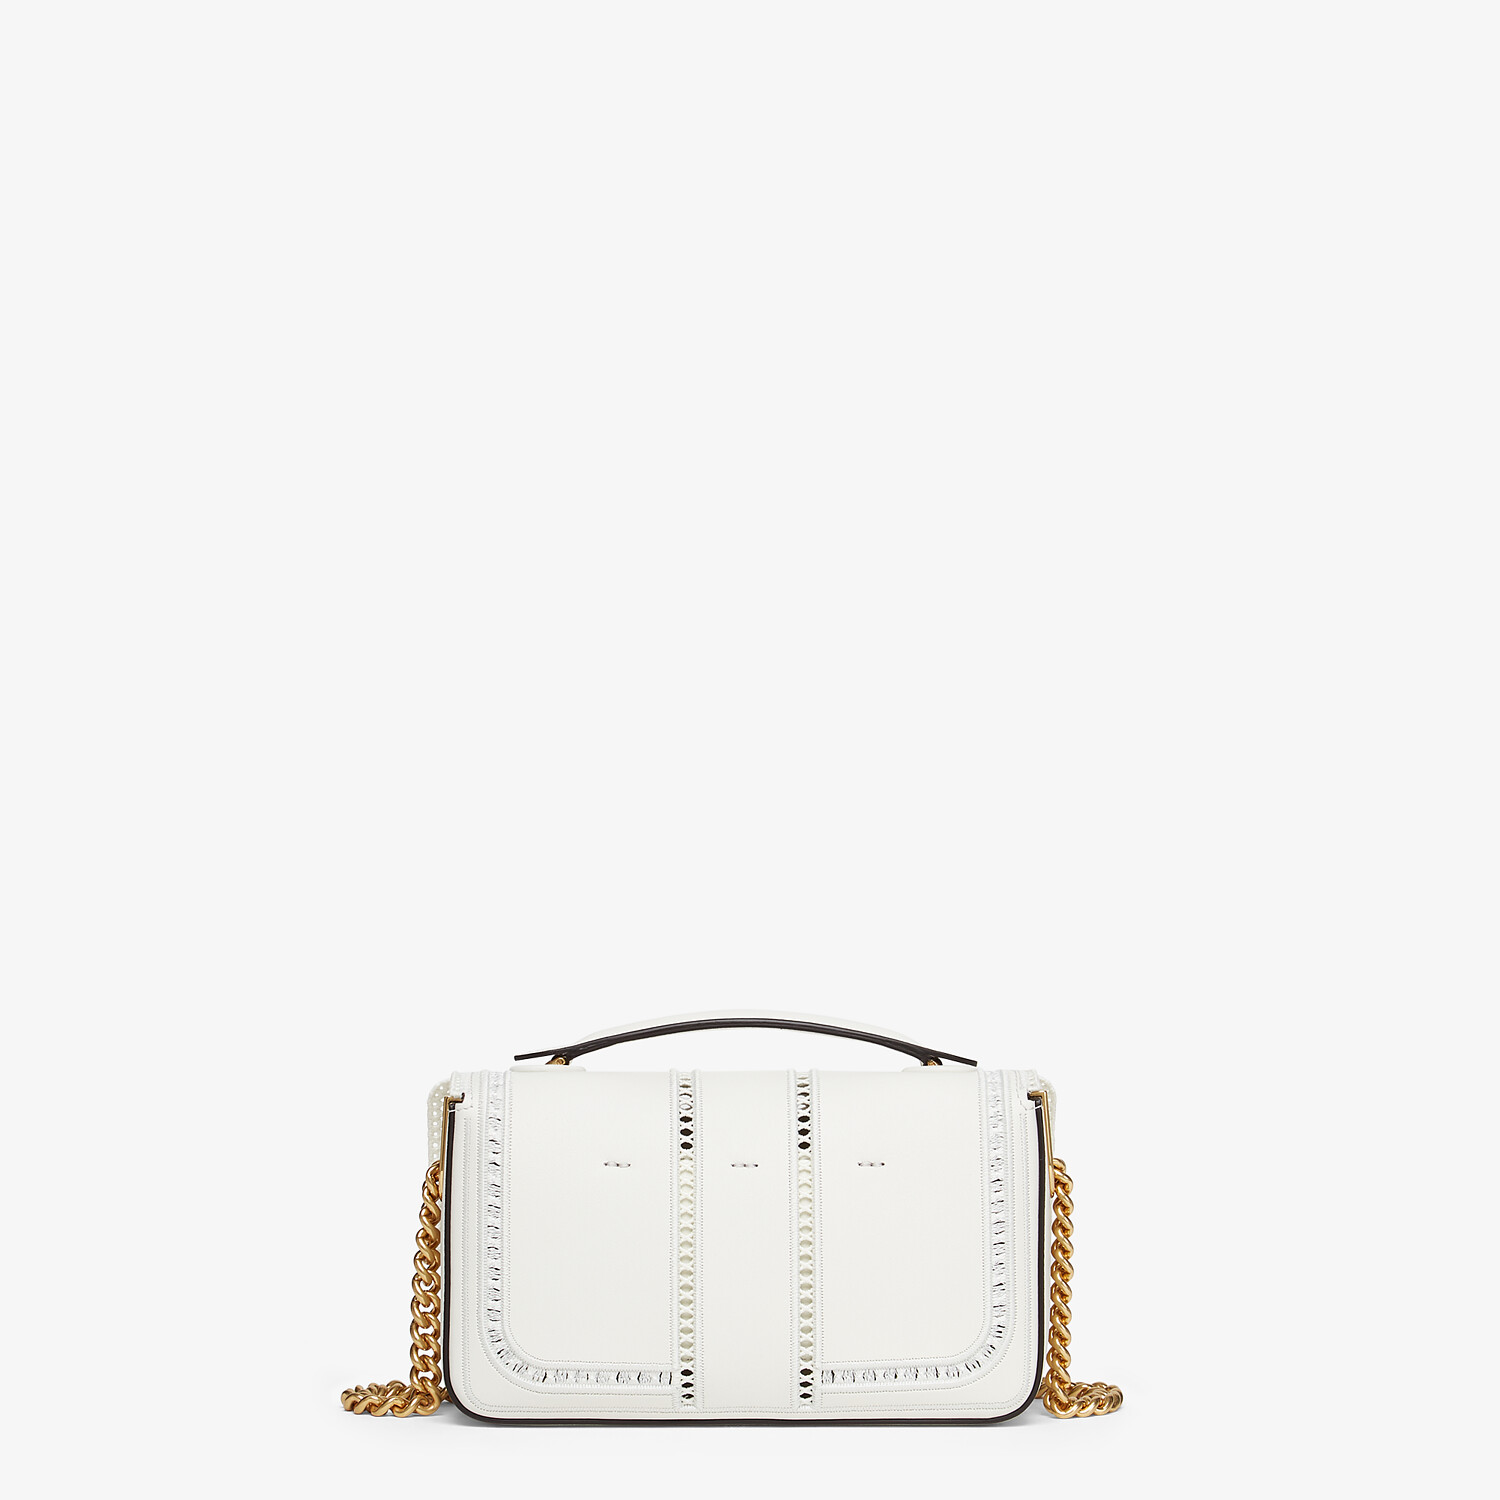 FENDI MINI BAGUETTE CHAIN - Embroidered white leather bag - view 3 detail